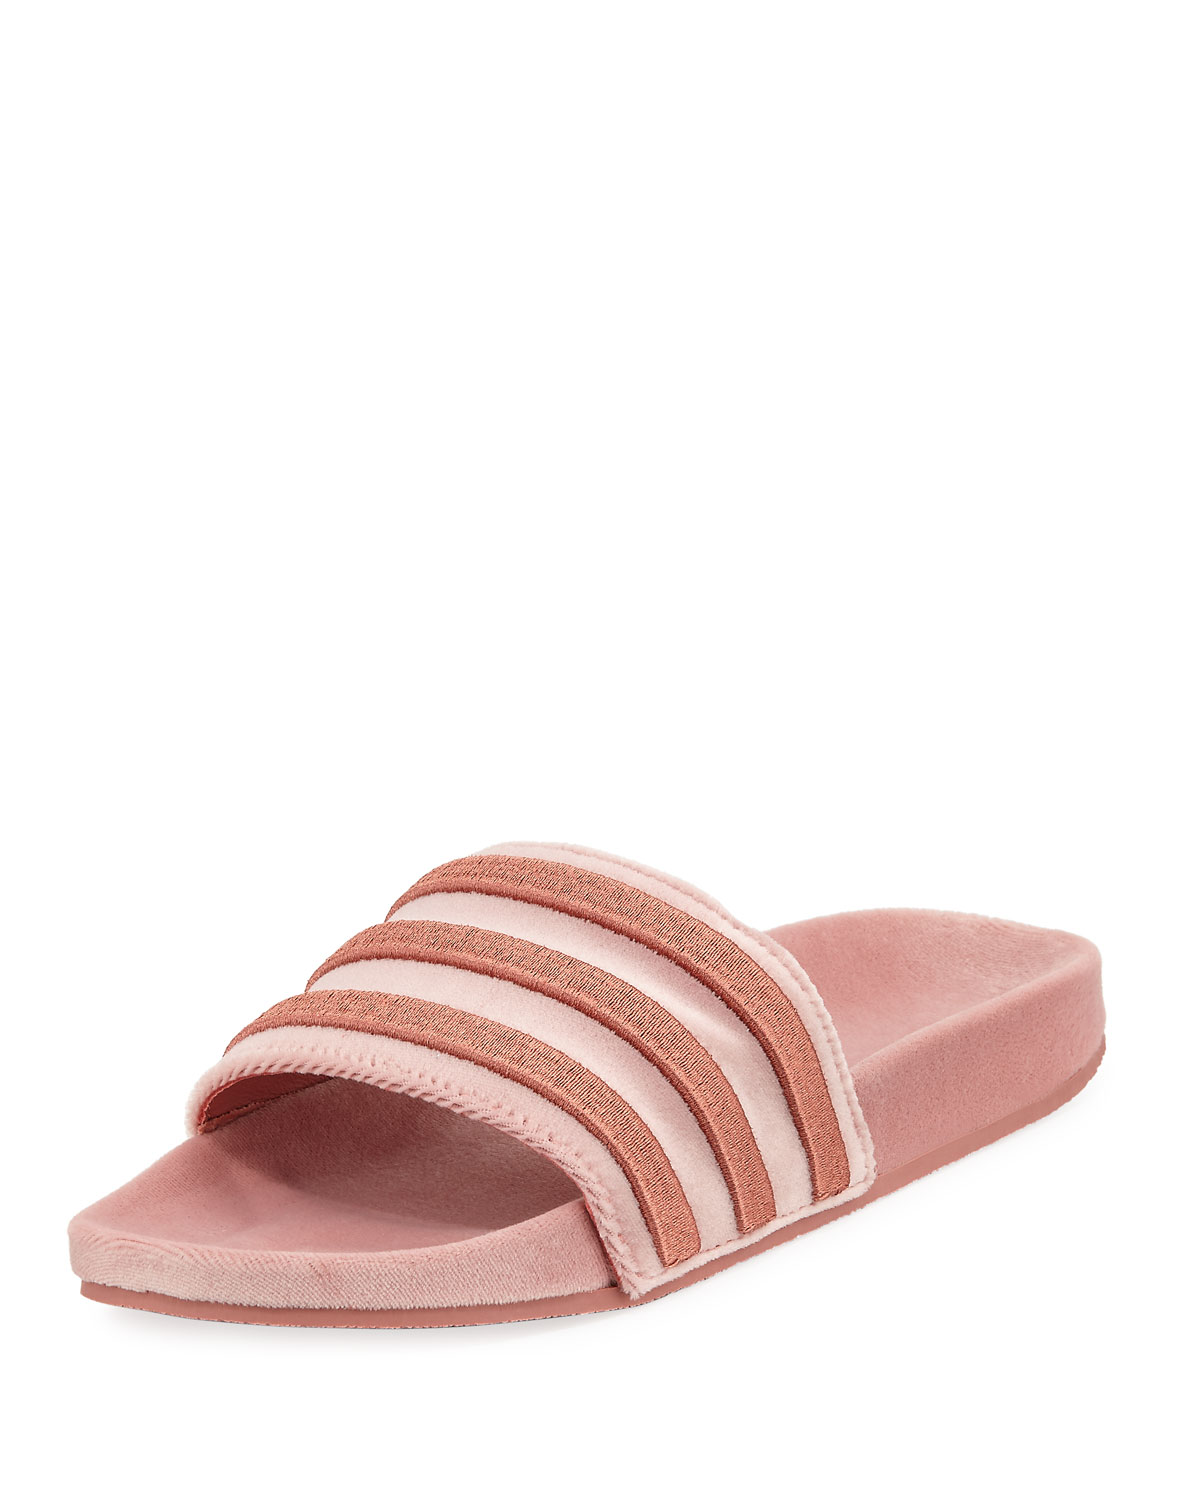 on sale f5aa1 f87fb Womens Adilette Striped Velvet Slide Sandal, Raw Pink